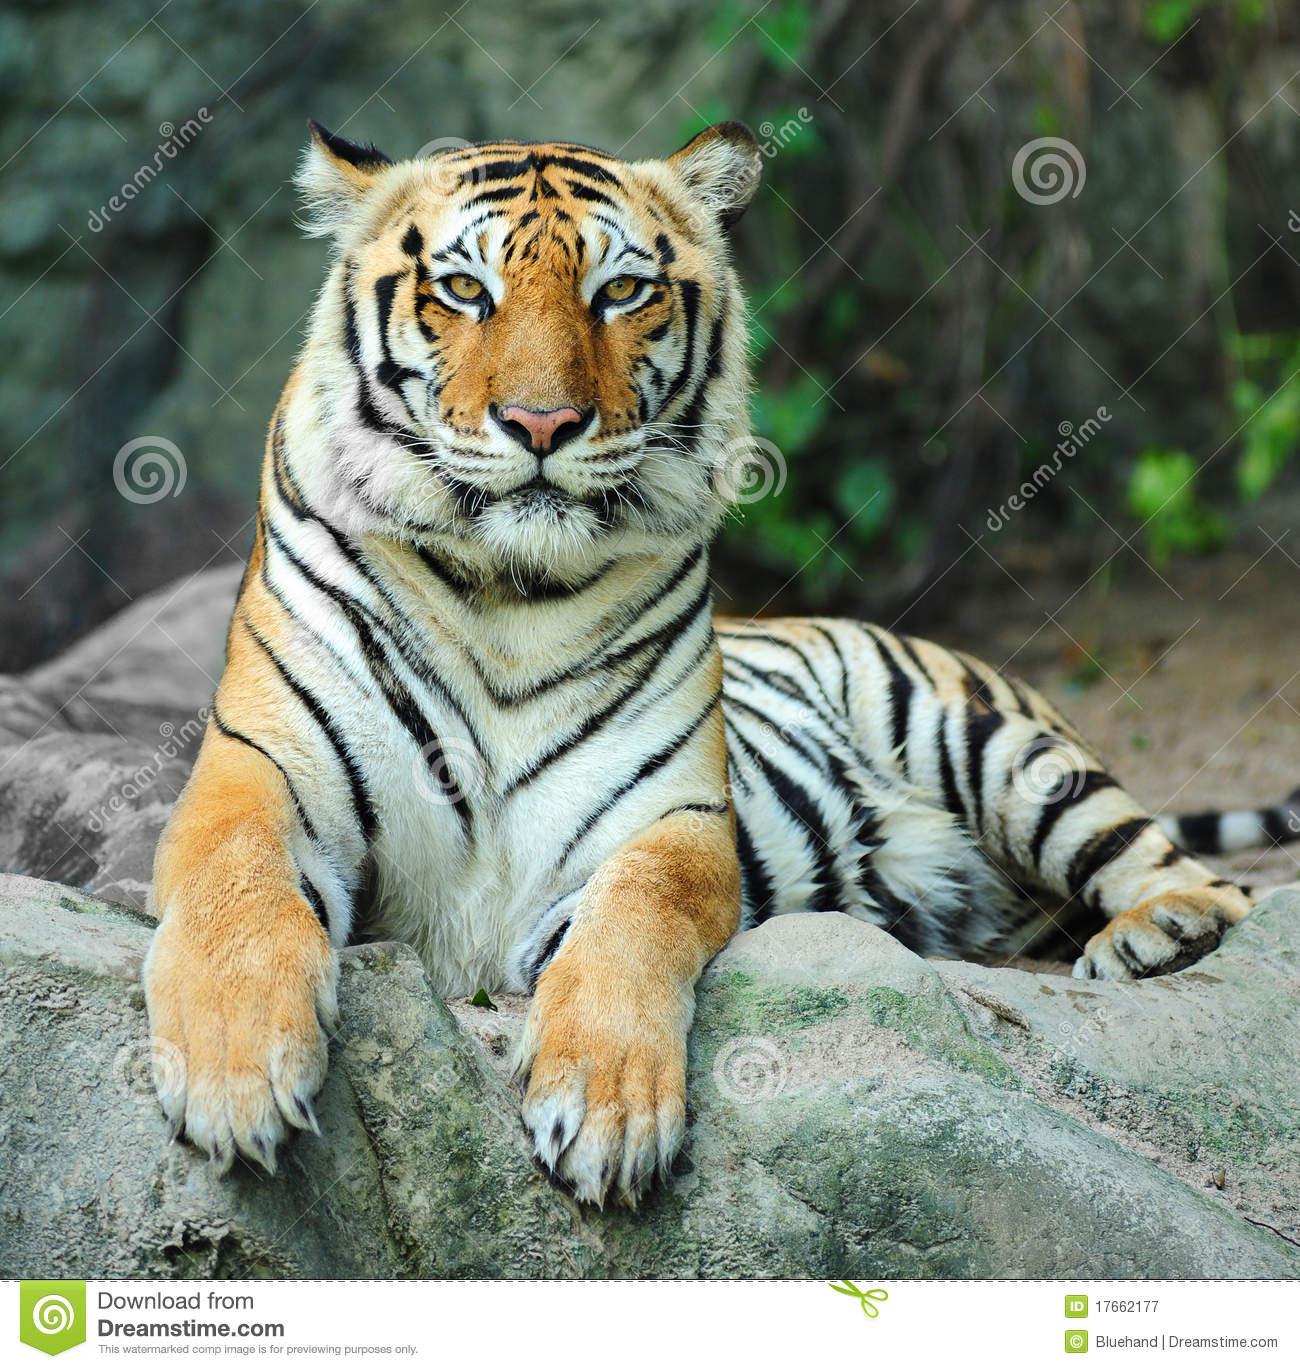 Tiger Facts For Kids – Interesting Facts About Tigers For Kids